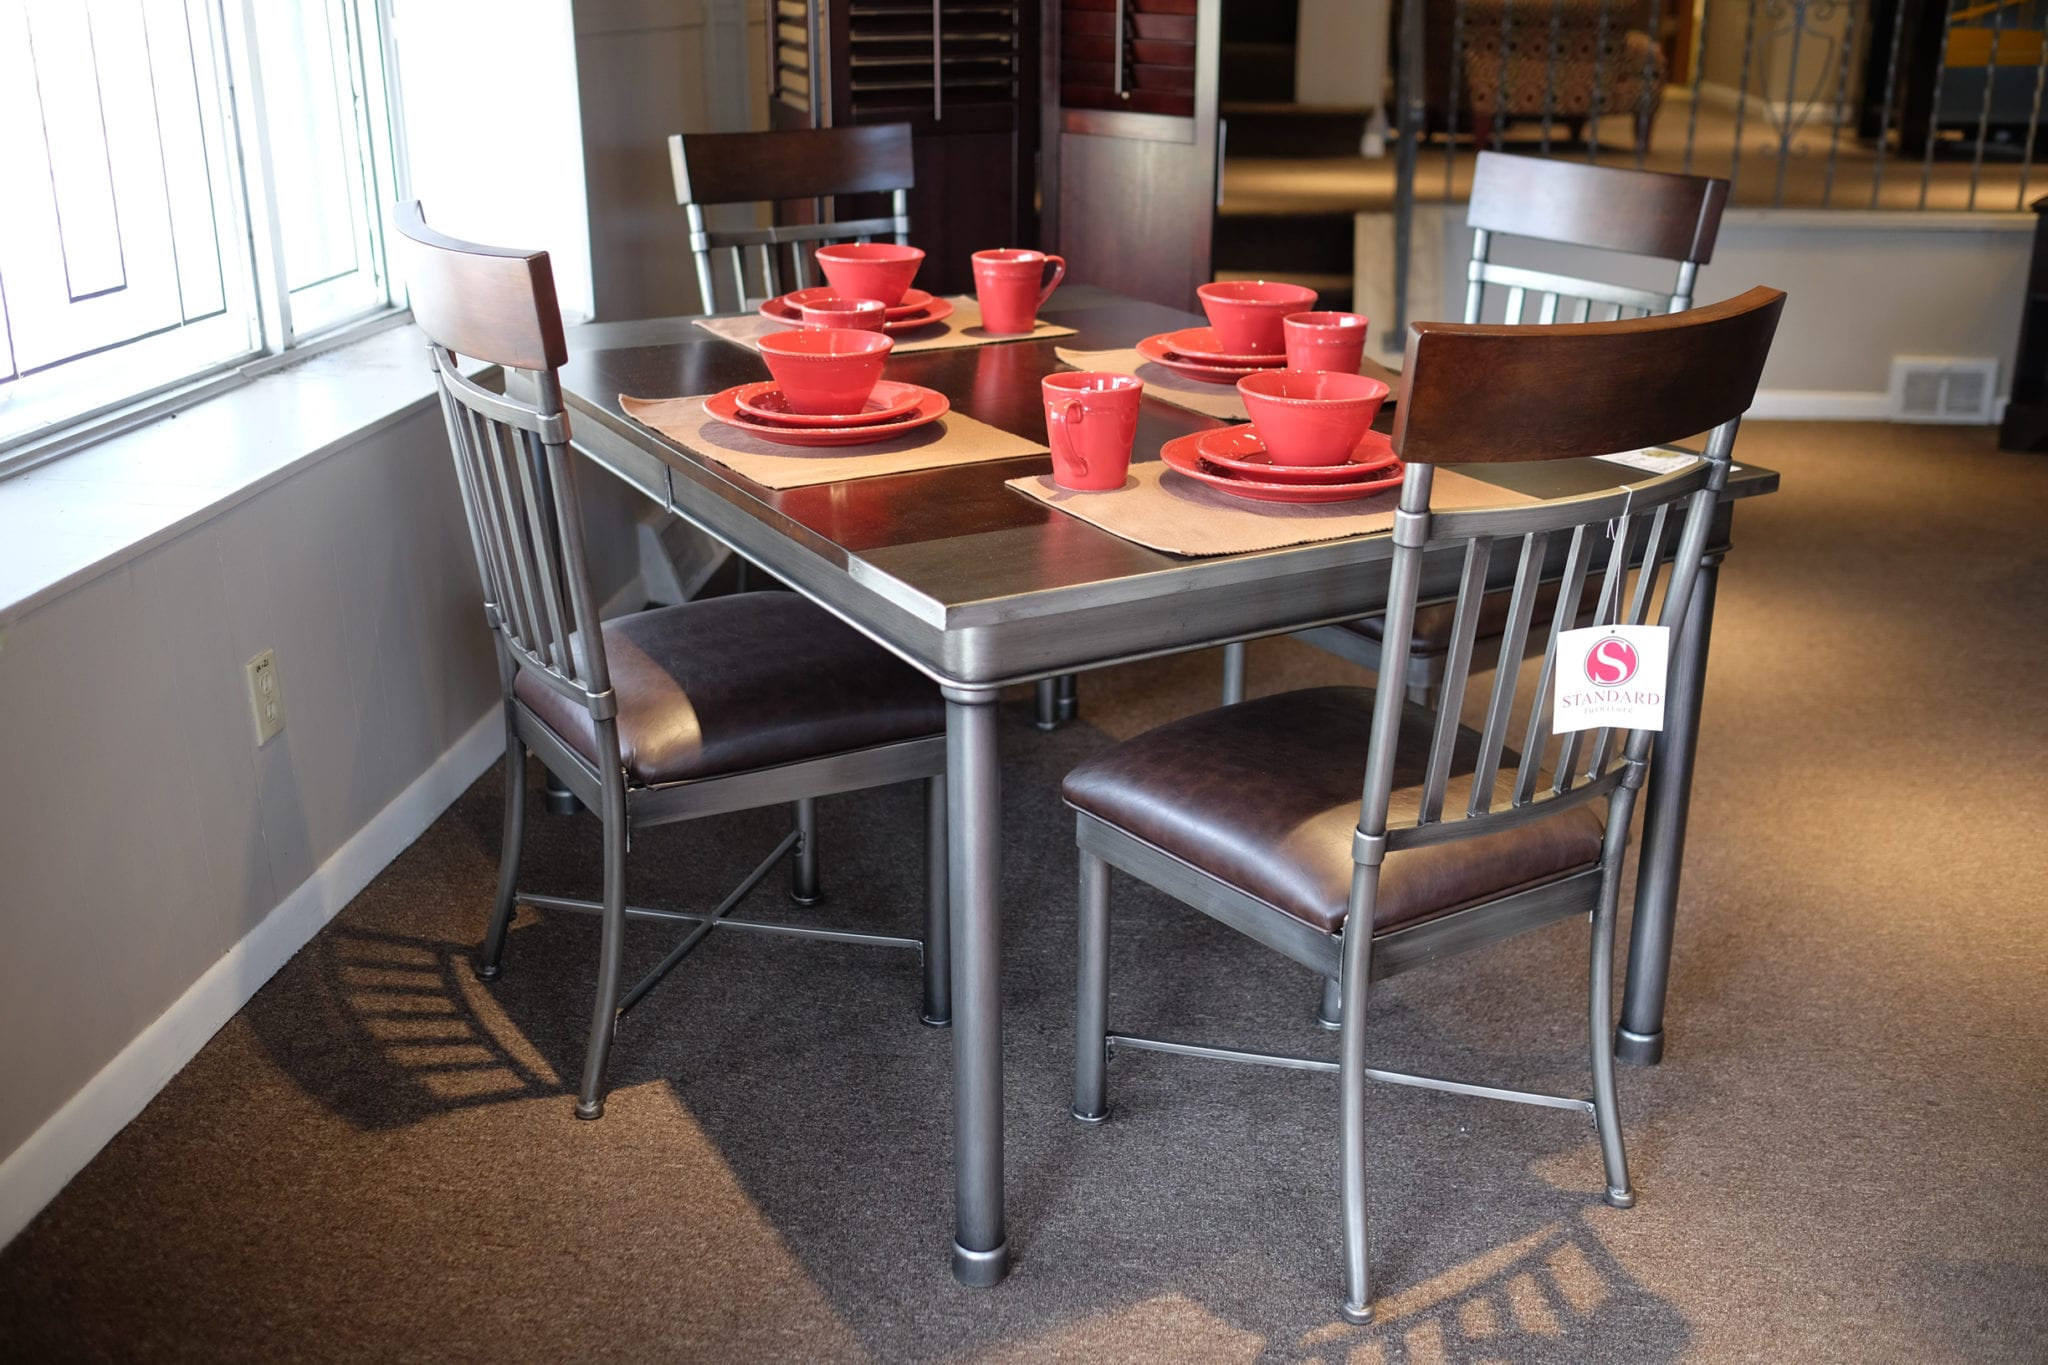 dining room furniture pittsburgh | Hudson Dinette with Leaf and 4 Chairs | Pittsburgh ...